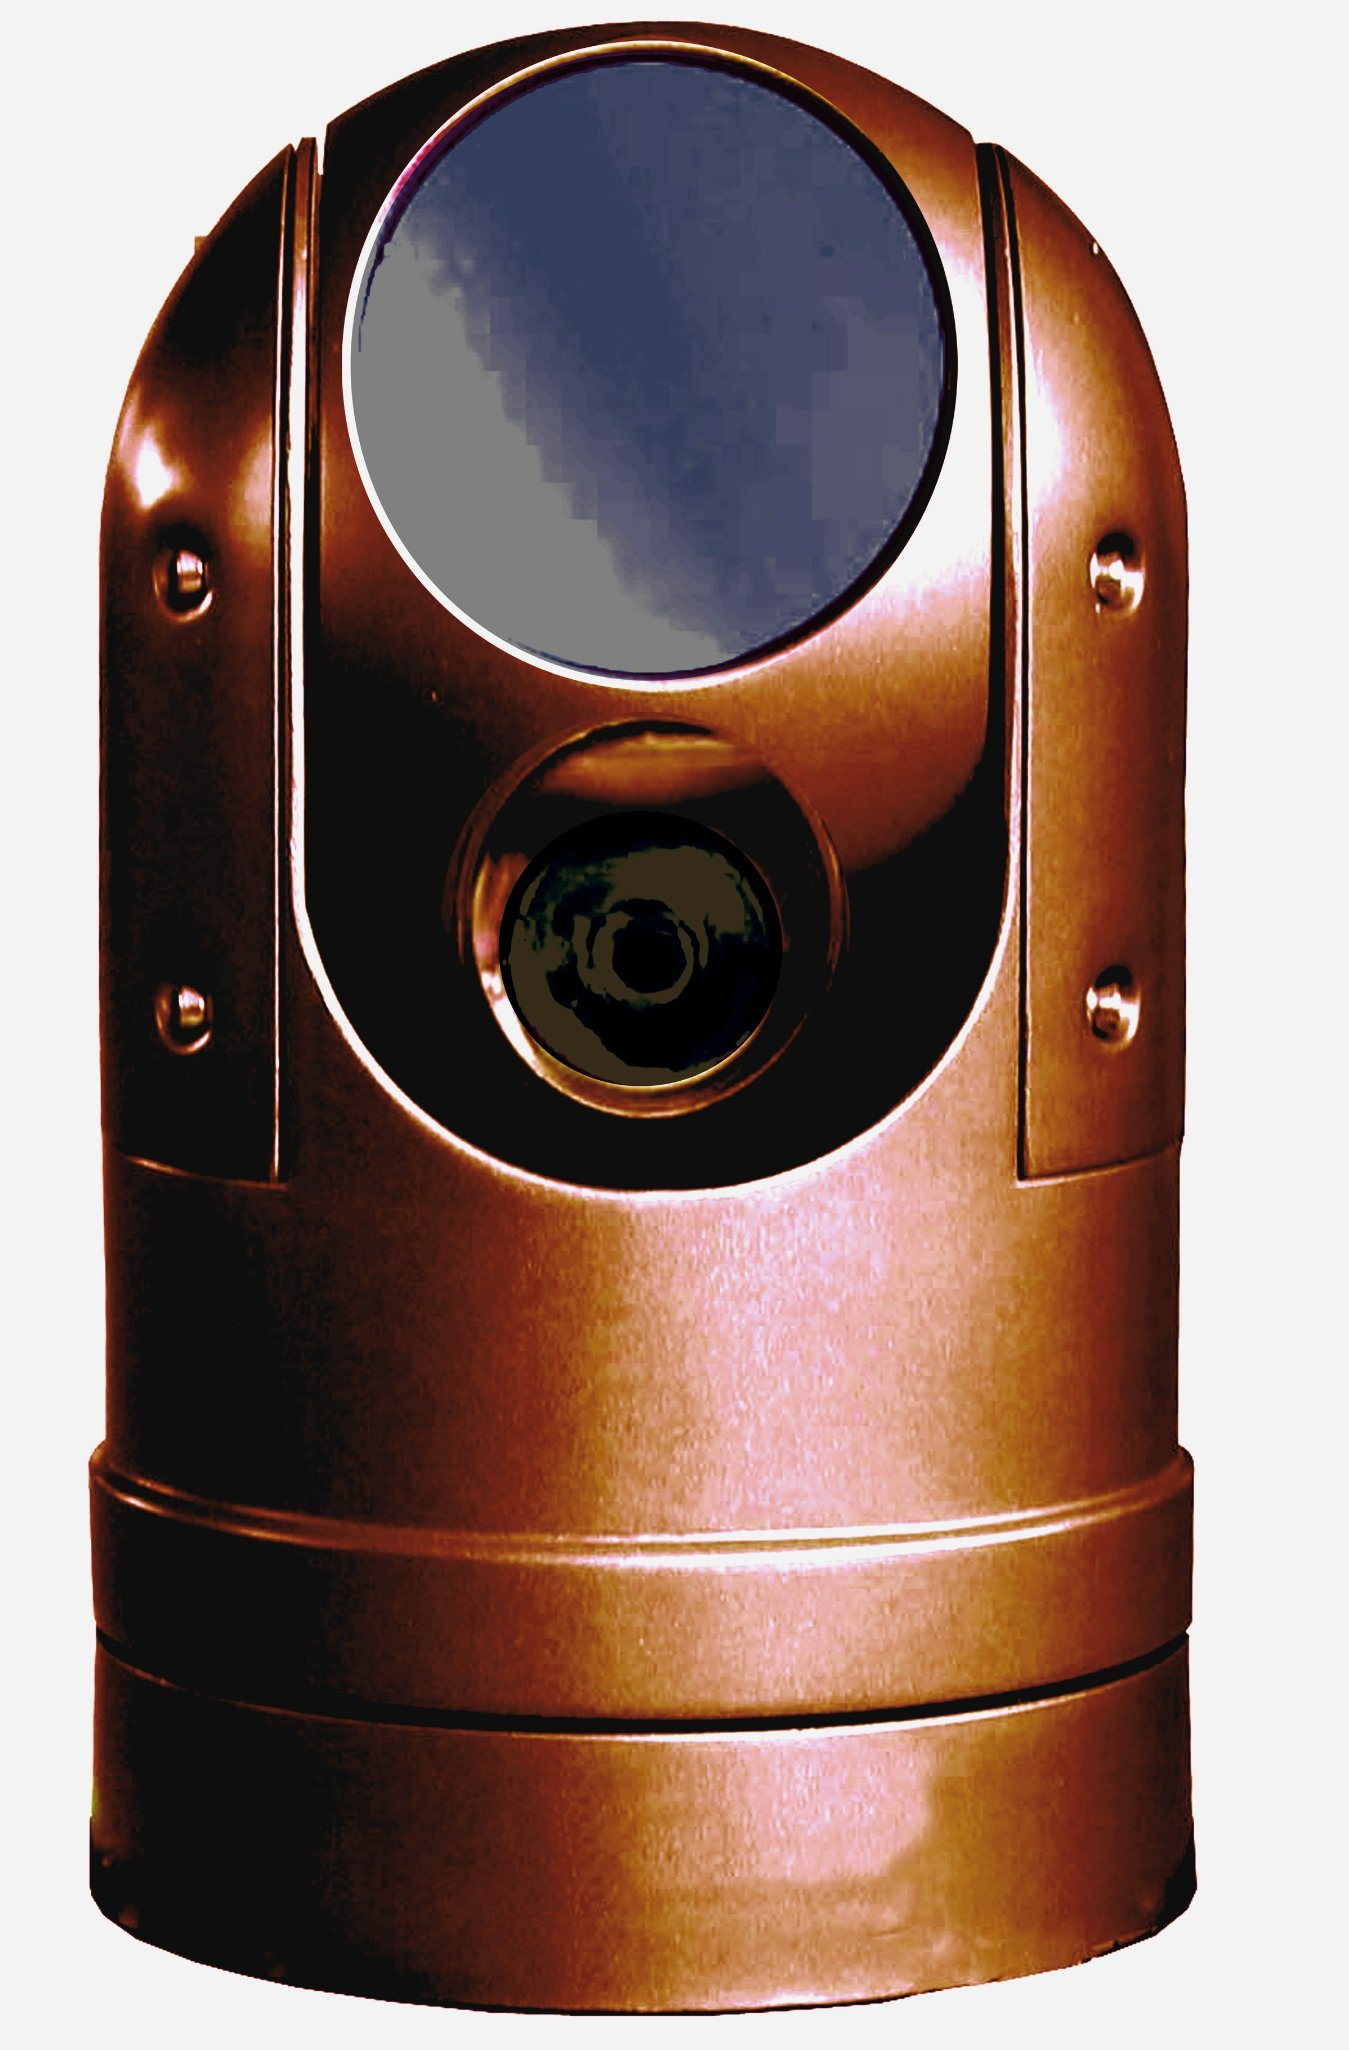 Outdoor Thermal PTZ HD 4k 3840 X 2160@30fps 1920X1080@60fps Camera with 100mm Upto 3km Thermal Detection Laser Assisted